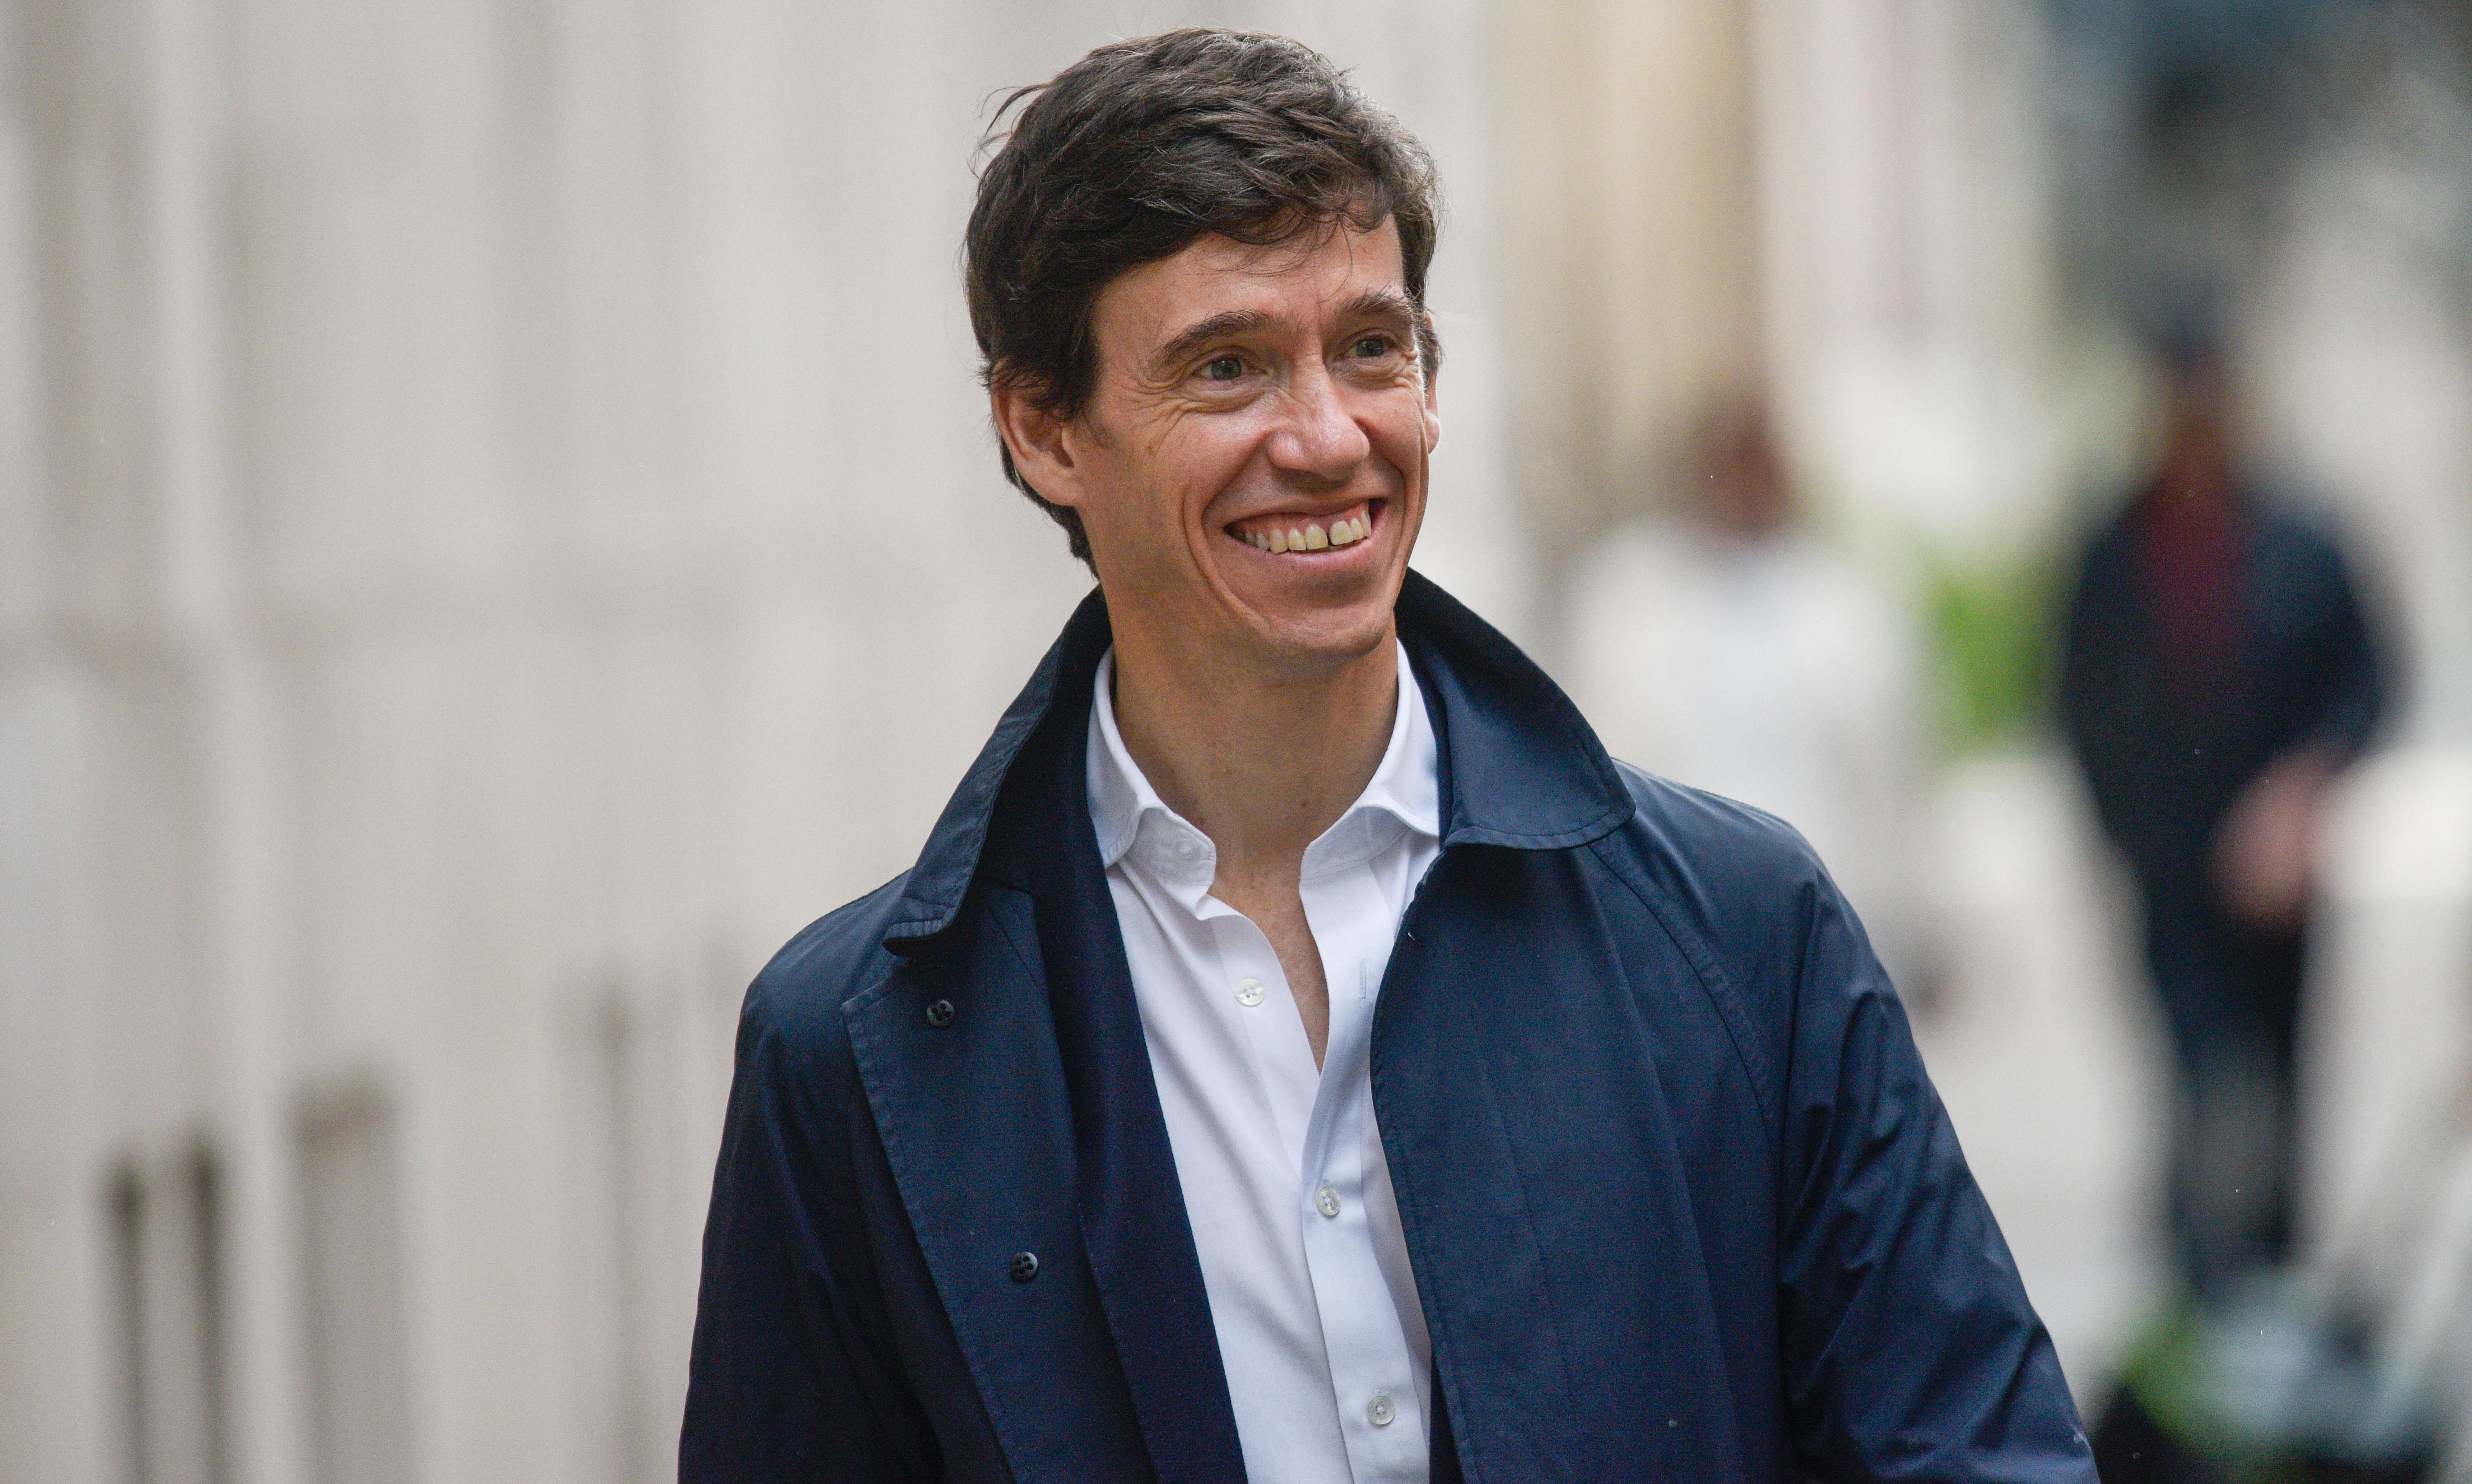 #ComeKipWithMe: 2,000 Londoners take up Rory Stewart's offer